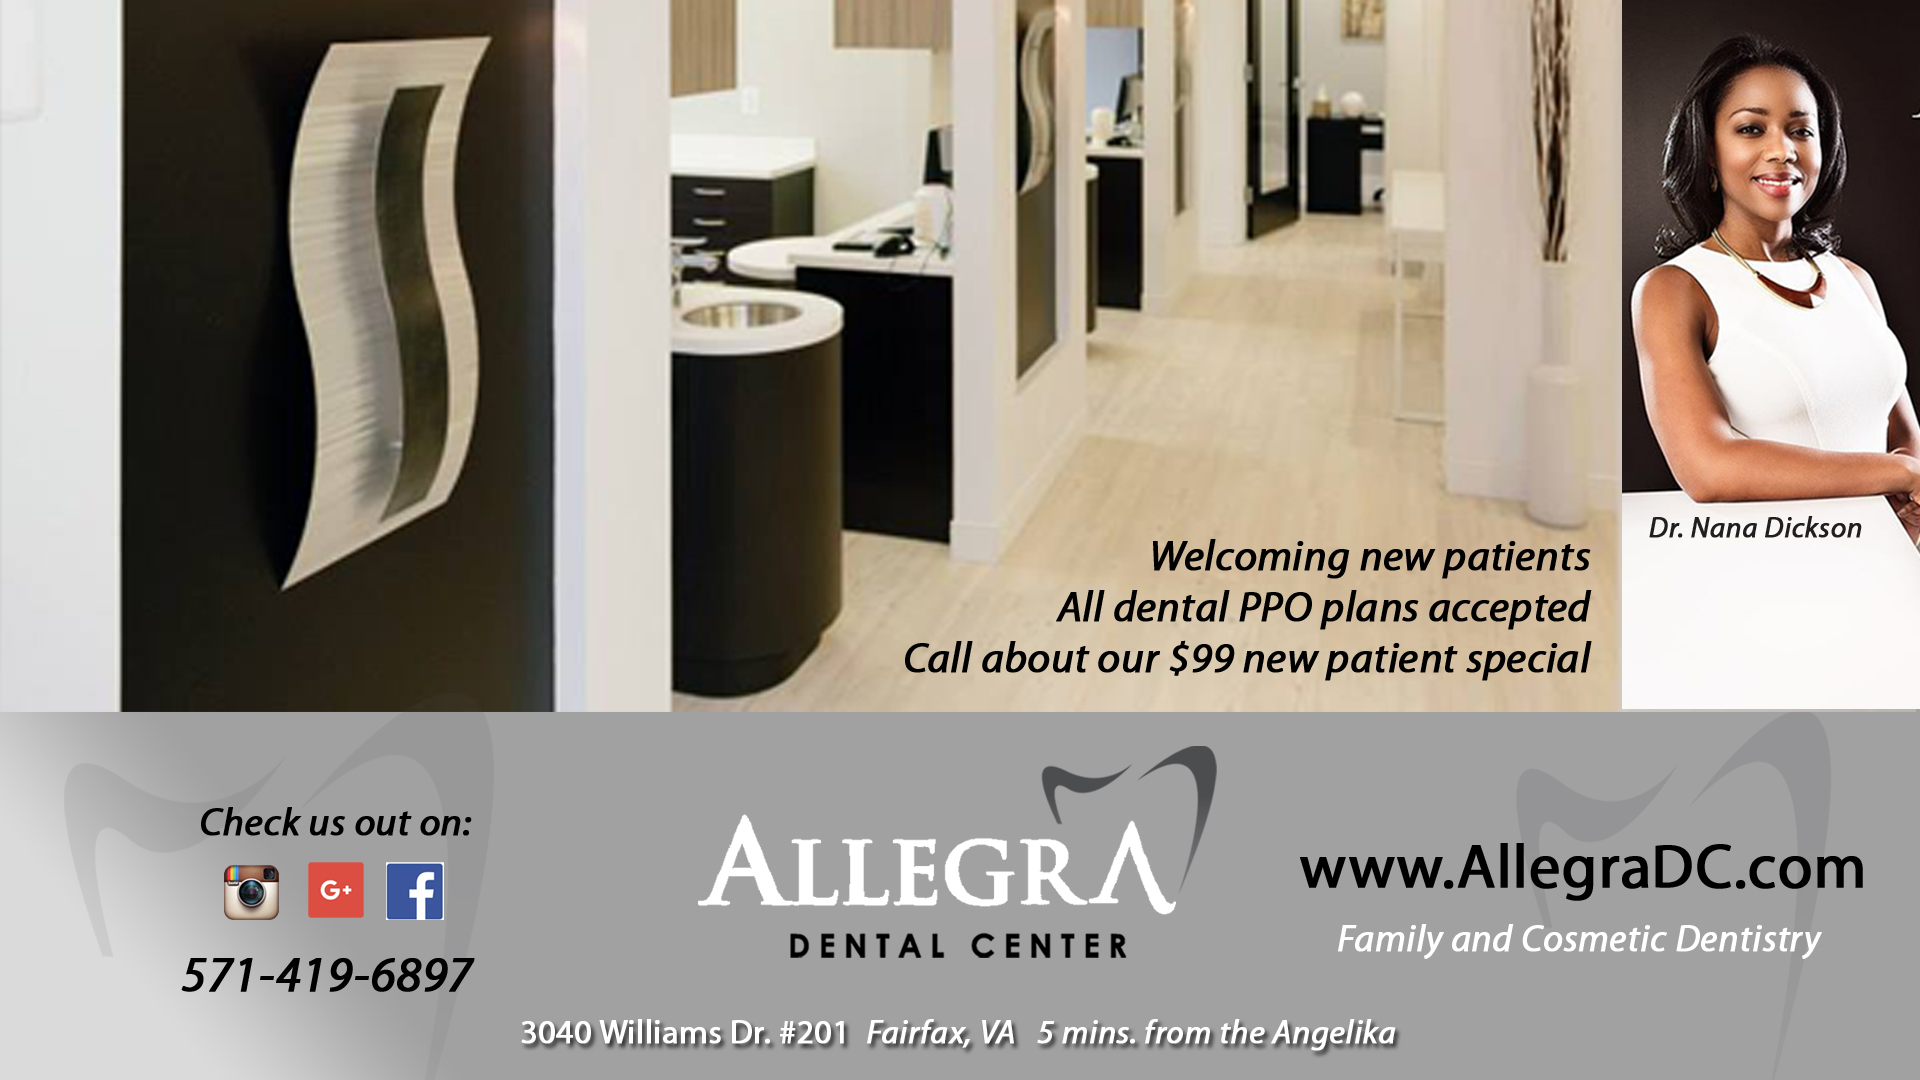 Allegra Dental Proof 6